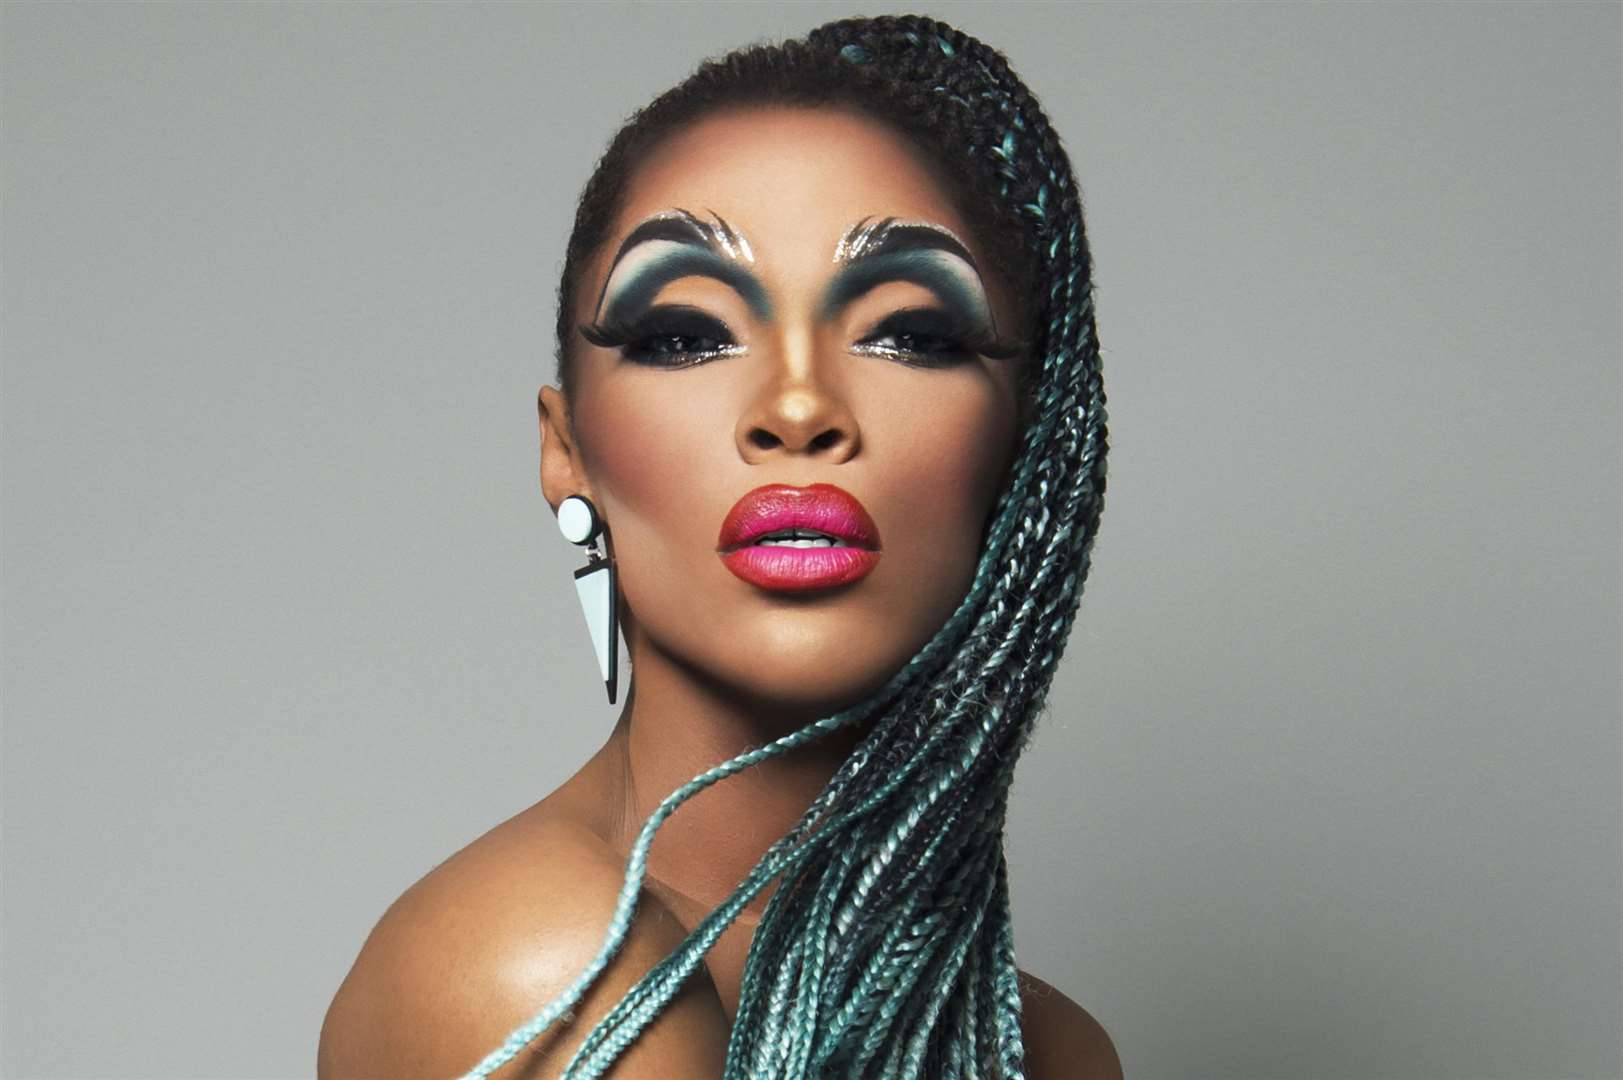 Drag Act Vixen who is performing at Canterbury Pride 2018